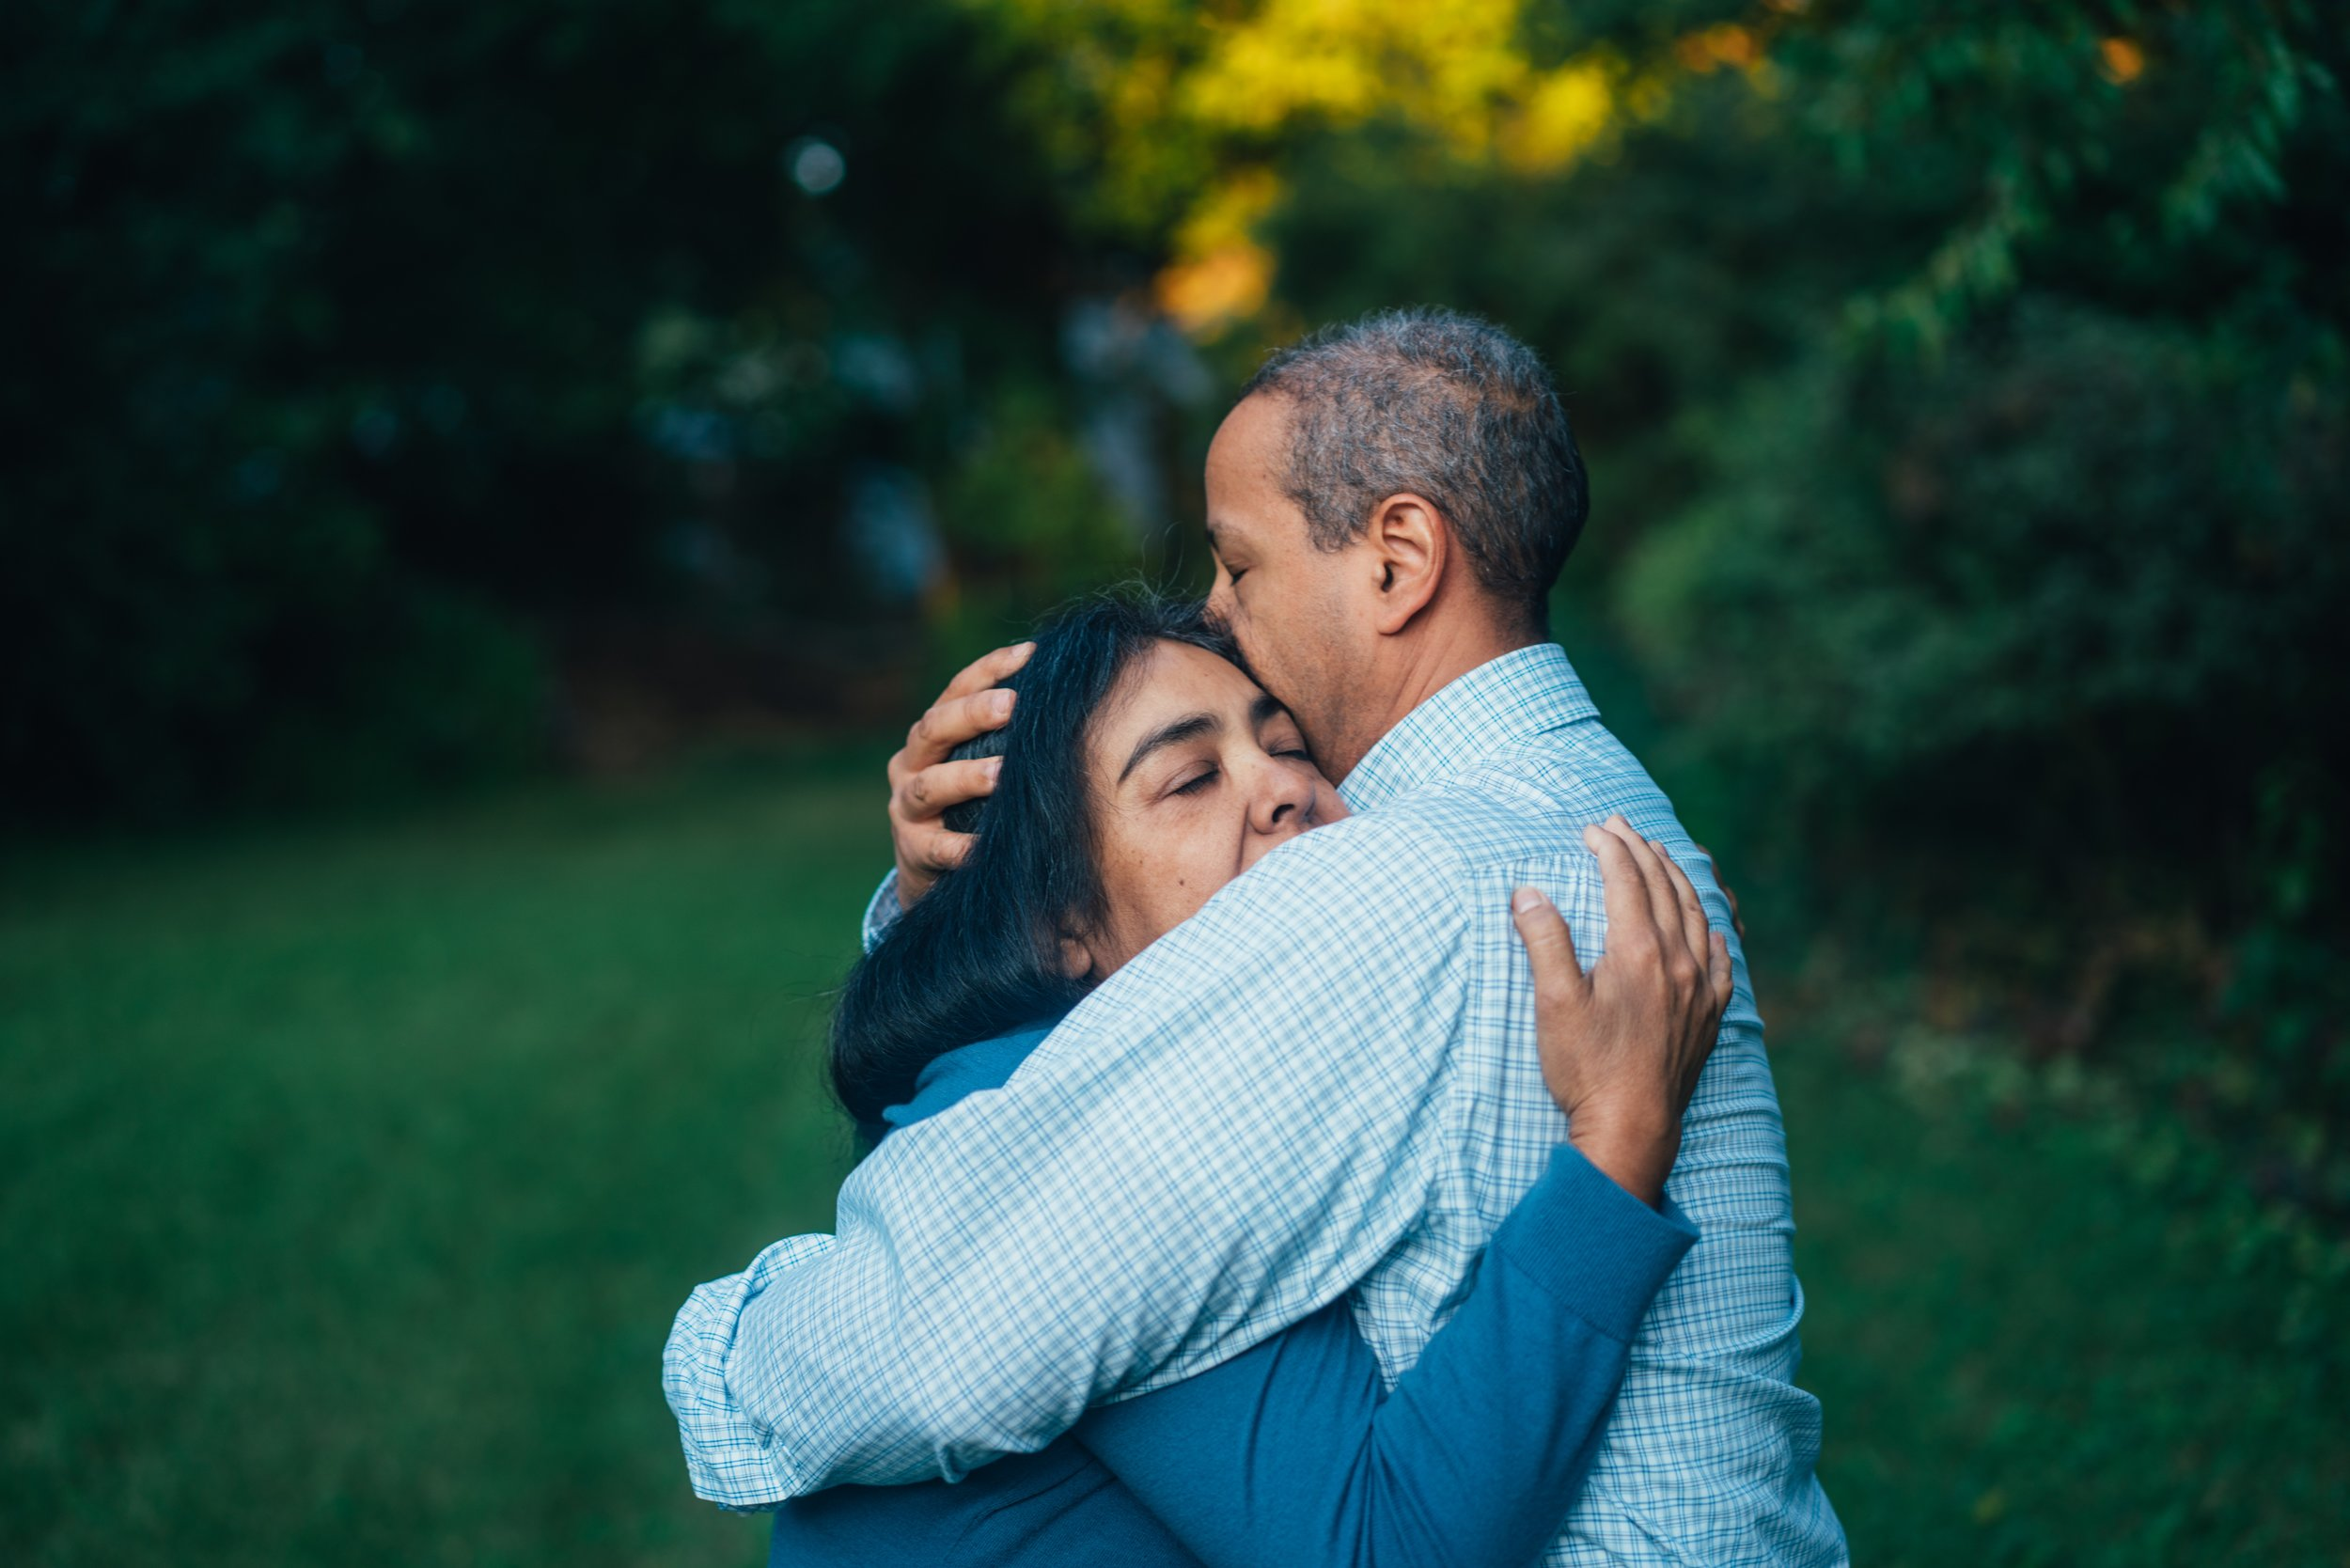 Middle aged dating can be challenging and yet fulfilling. The singles counseling program at Tri-Valley Relationship Therapy, Inc. in Dublin & Oakland can help you navigate the challenges of dating.   Photo by    Gus Moretta